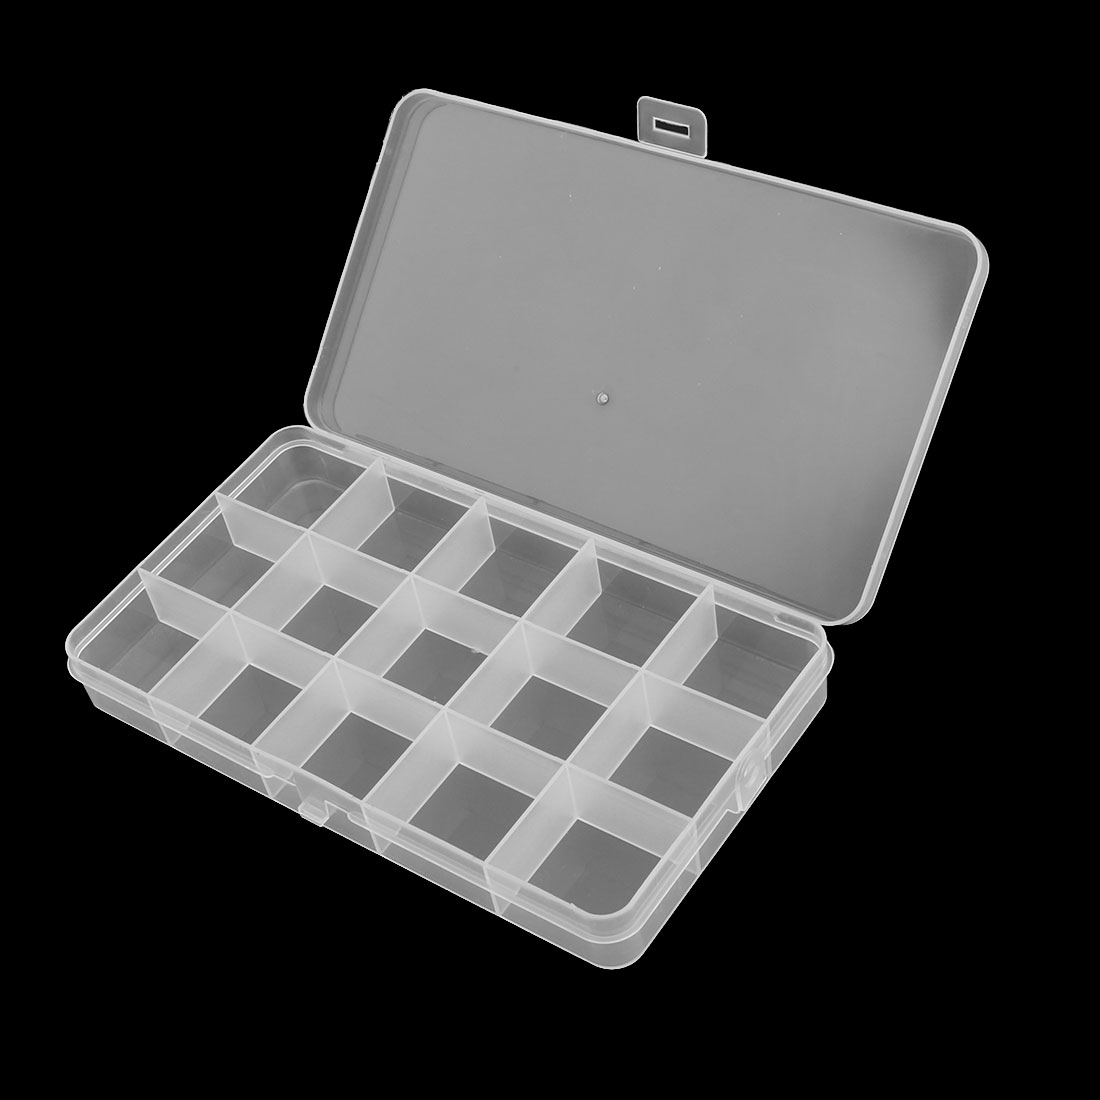 Household Office 15 Compartments Sundries Beads Capsule Storage Case Box 5 Pcs - image 3 of 4